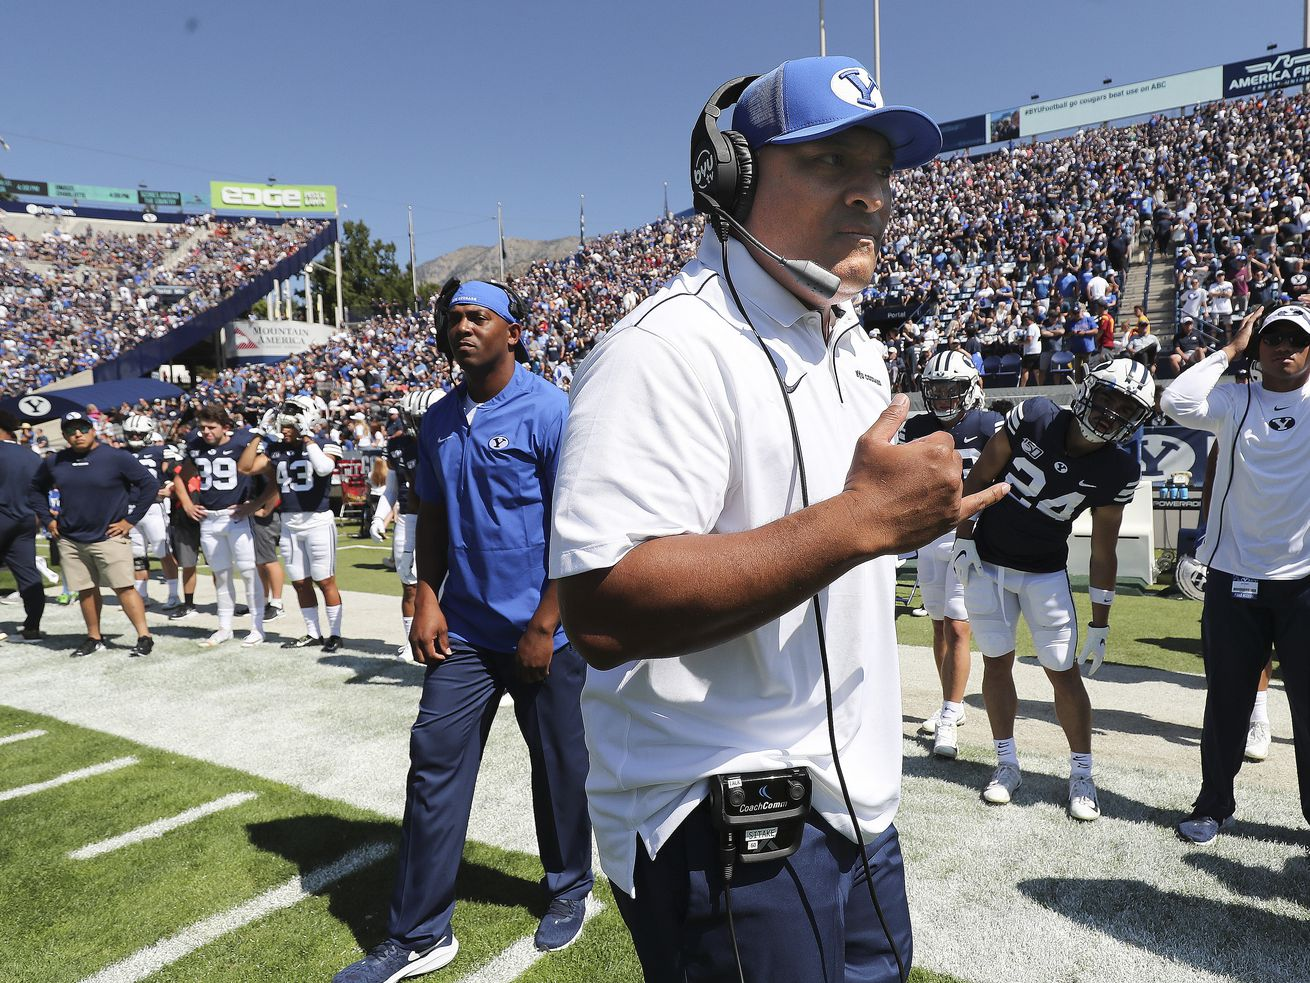 Thrilling overtime home win over a ranked, Power Five opponent in USC should turn down the heat on BYU coach Kalani Sitake